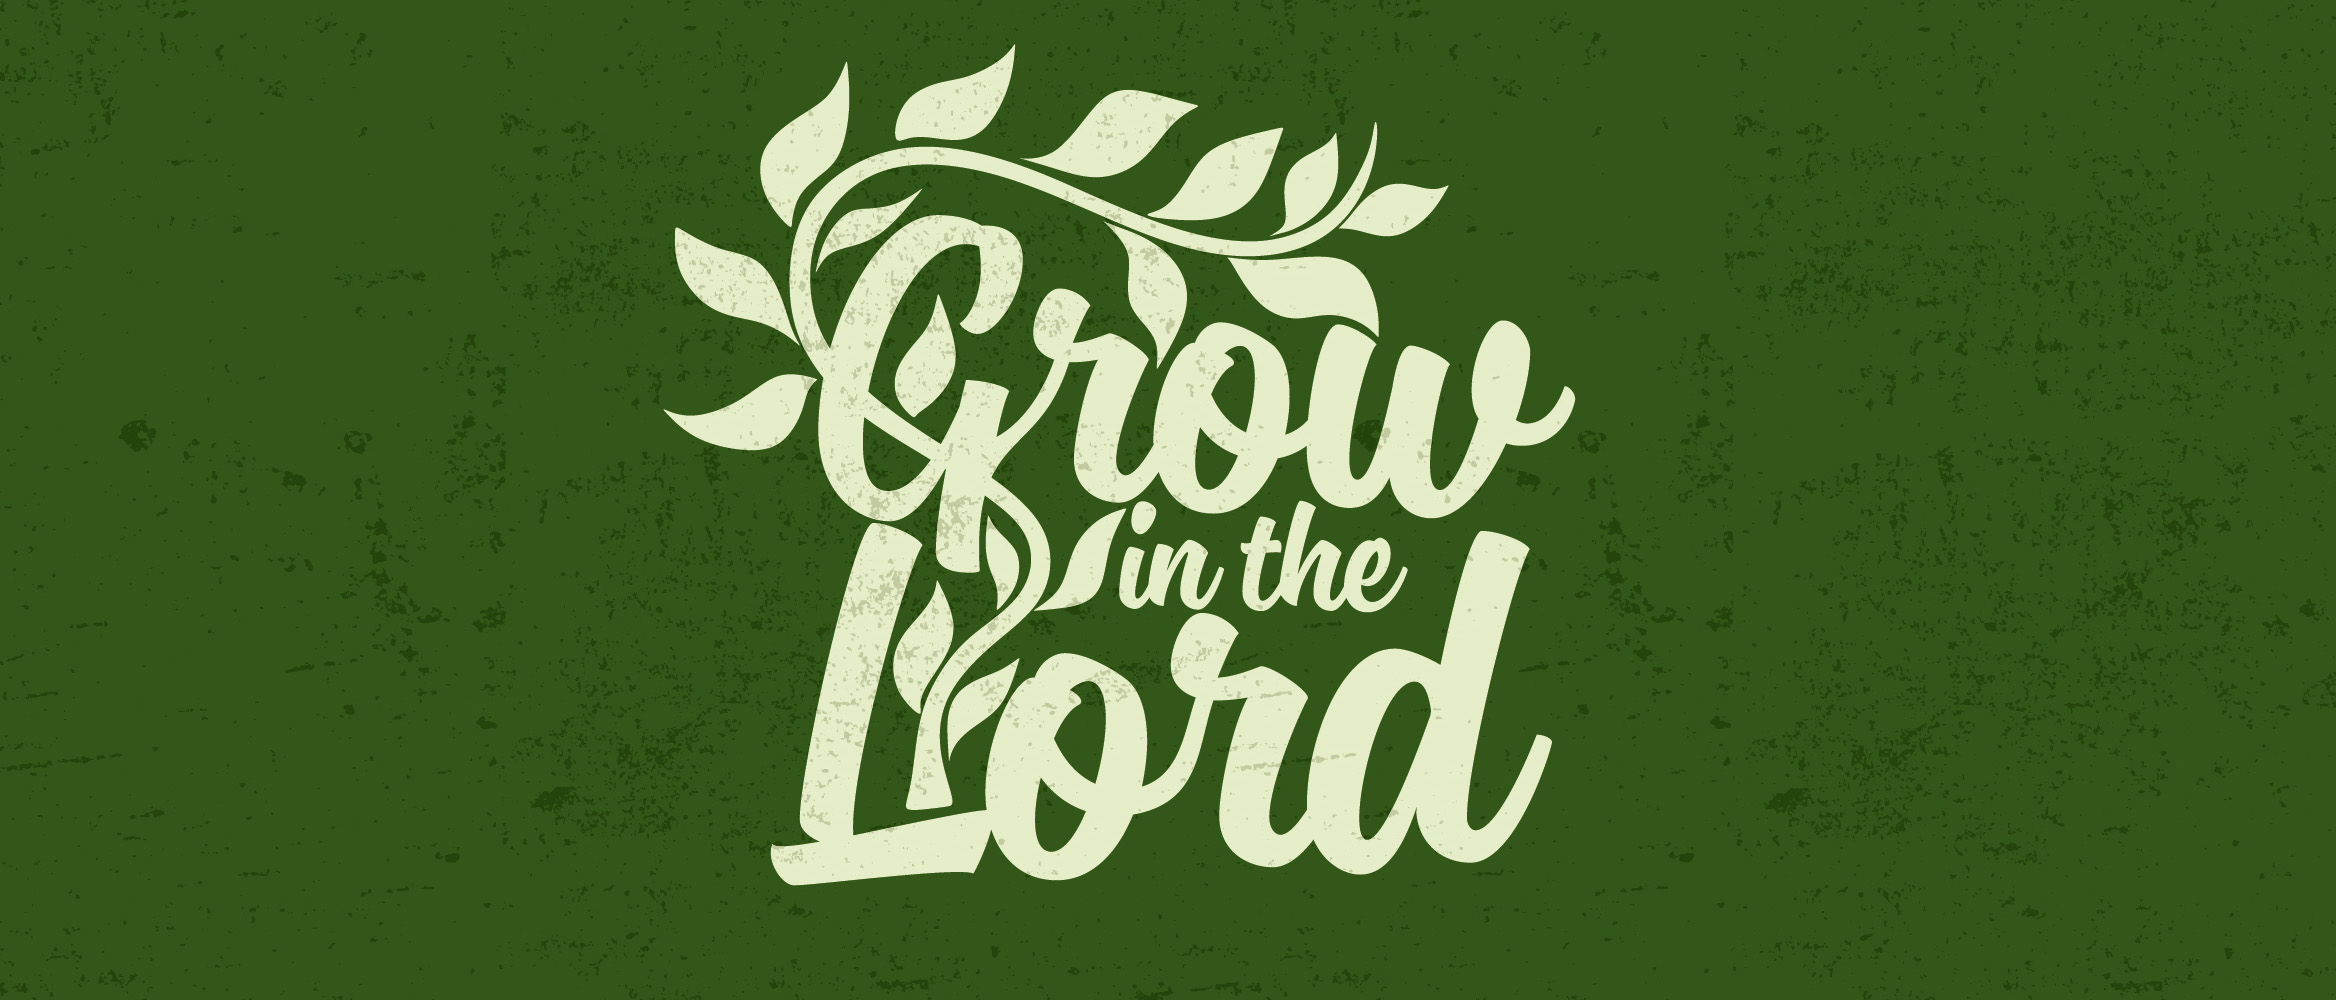 Grow in the Lord web banner